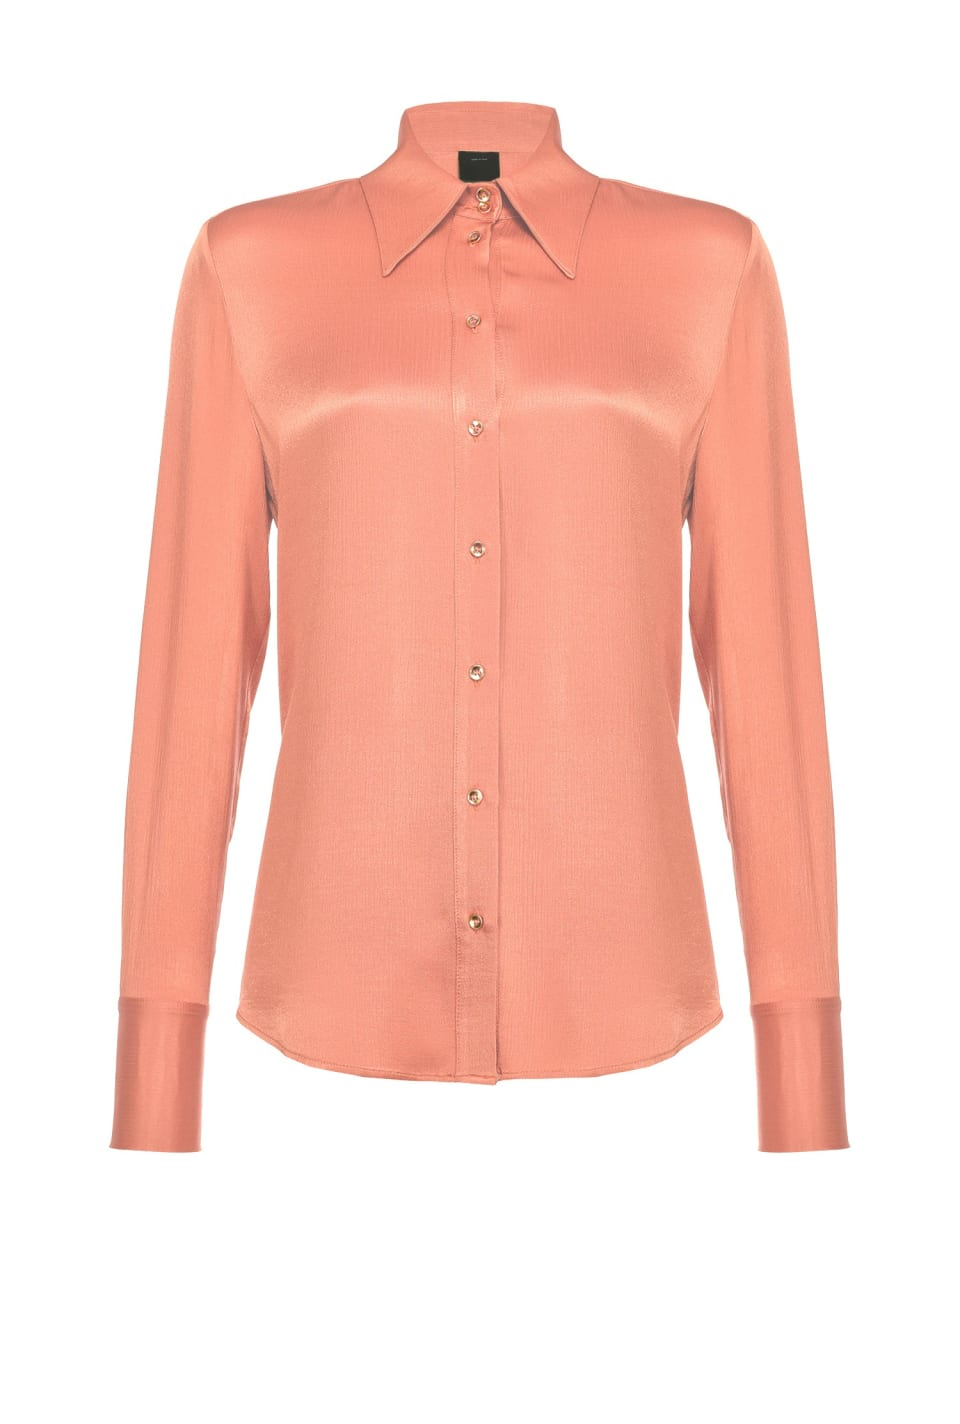 Supple shirt in friossé satin - Pinko